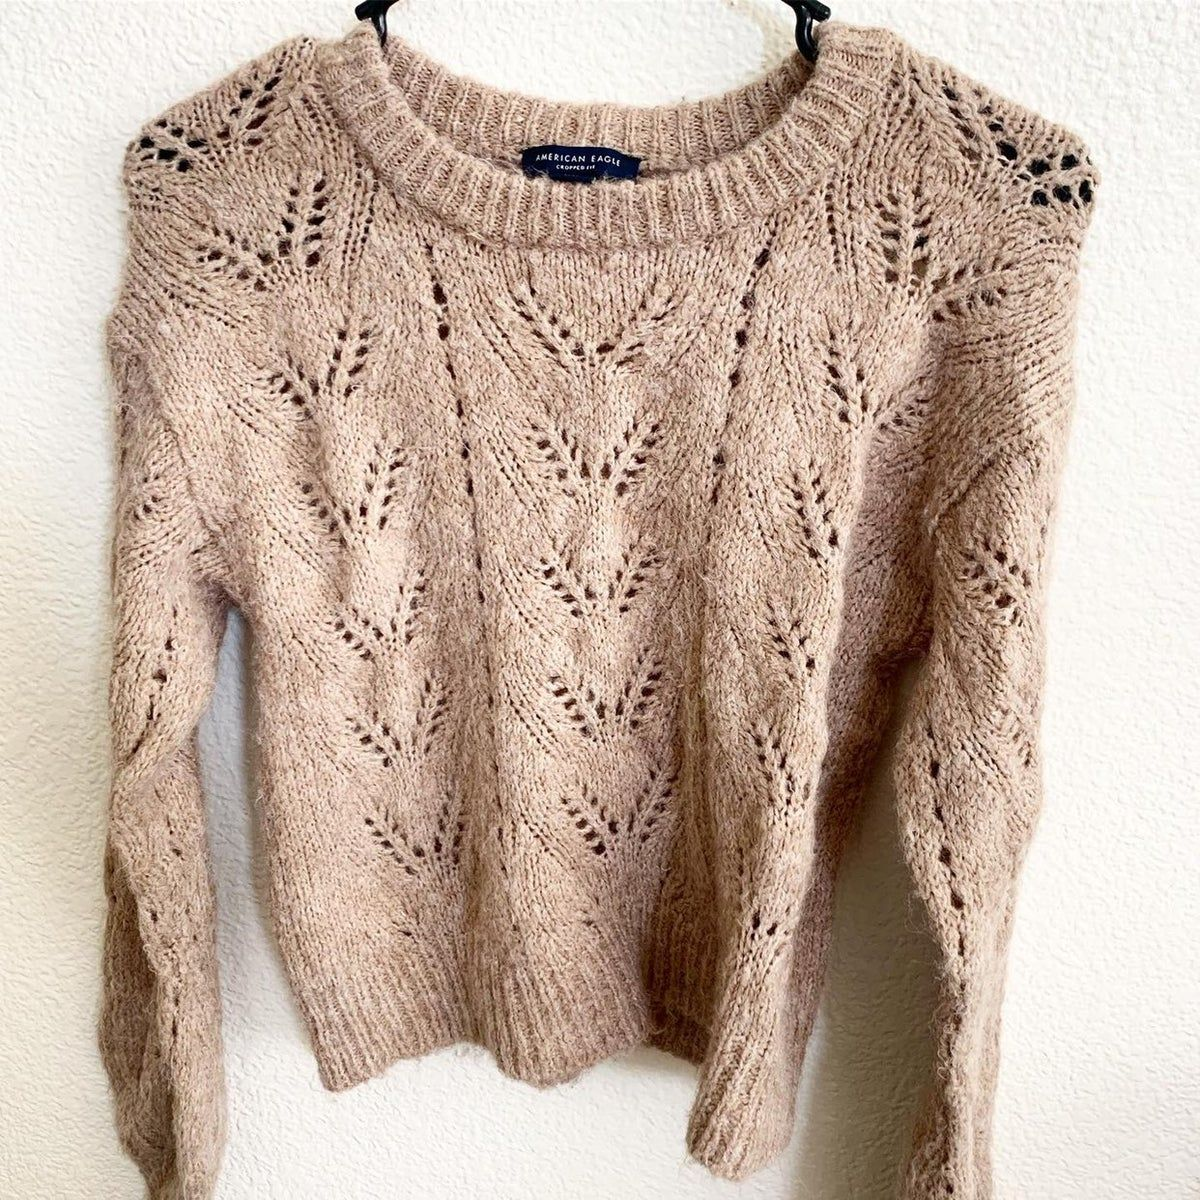 #americaneagle XS/S #crop #knitted #sweater light brown / tan Super soft Good condition